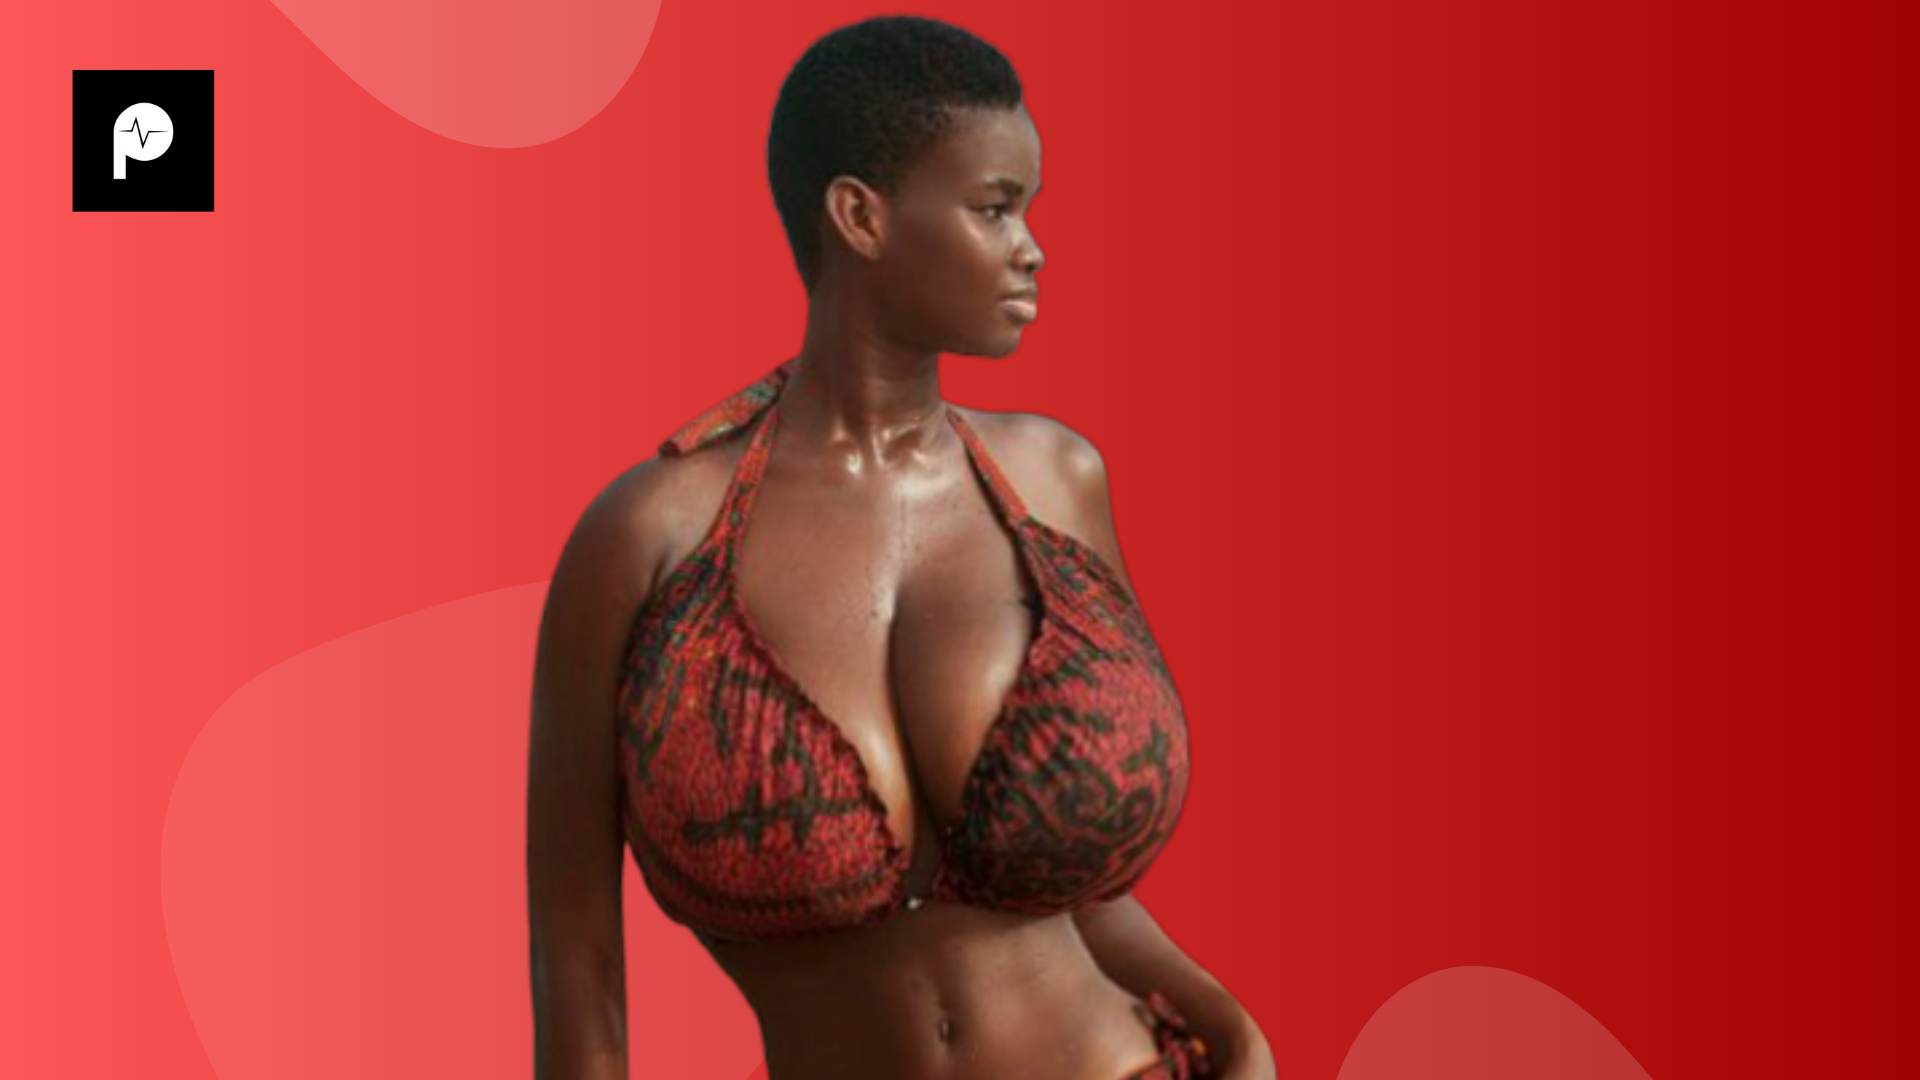 My big boobs make it painful to exercise Here Are 5 Must Have Back Pain Relief Tips For Women With Big Breasts Pulse Nigeria